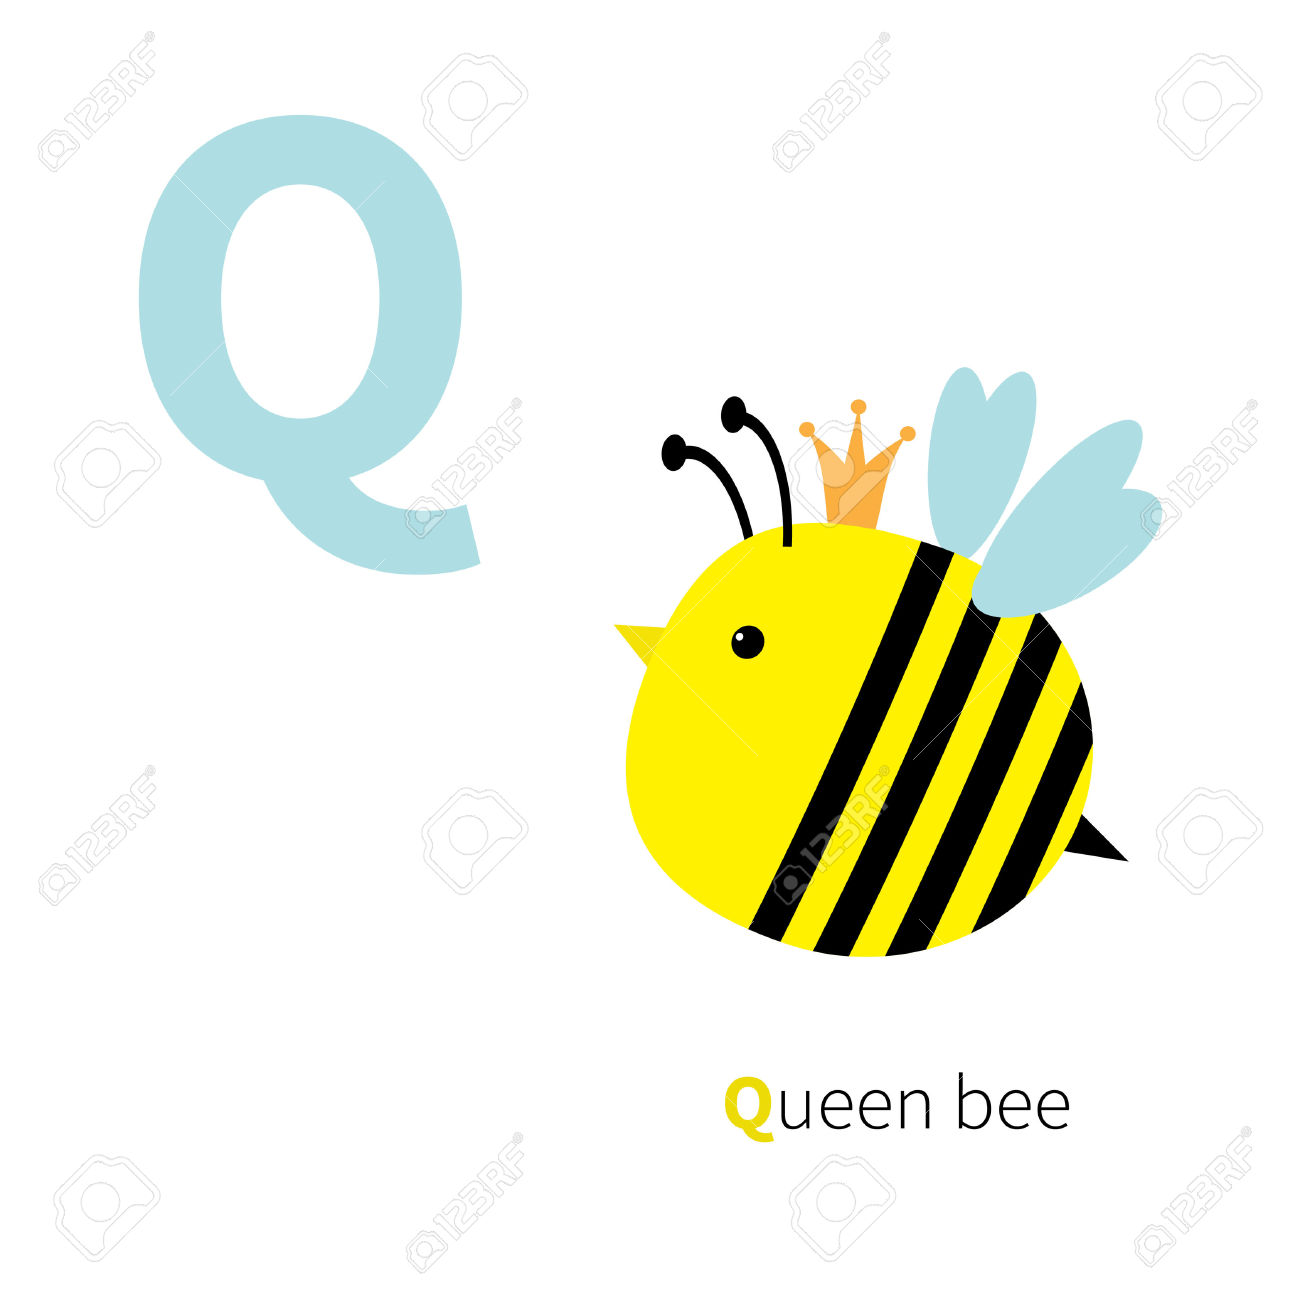 Alphabet bee abc clipart png royalty free library Letter Q Queen Bee Zoo Alphabet. English Abc With Animals ... png royalty free library